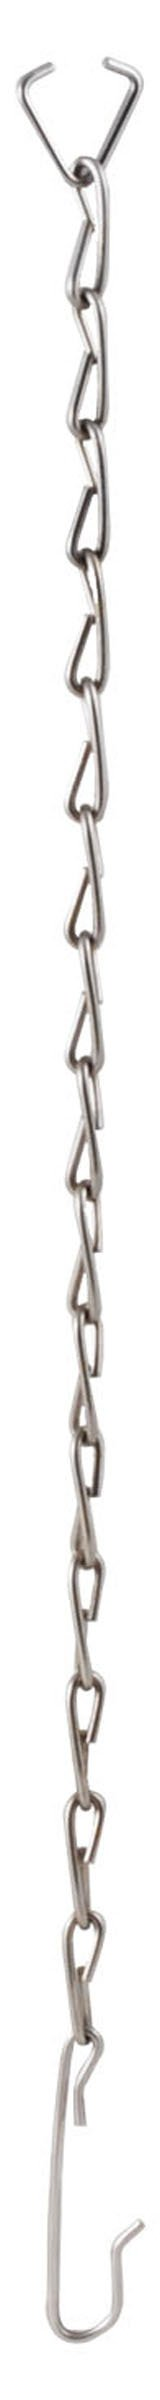 LDR Industries 503 2492 Toilet Flapper Chain, Stainless steel